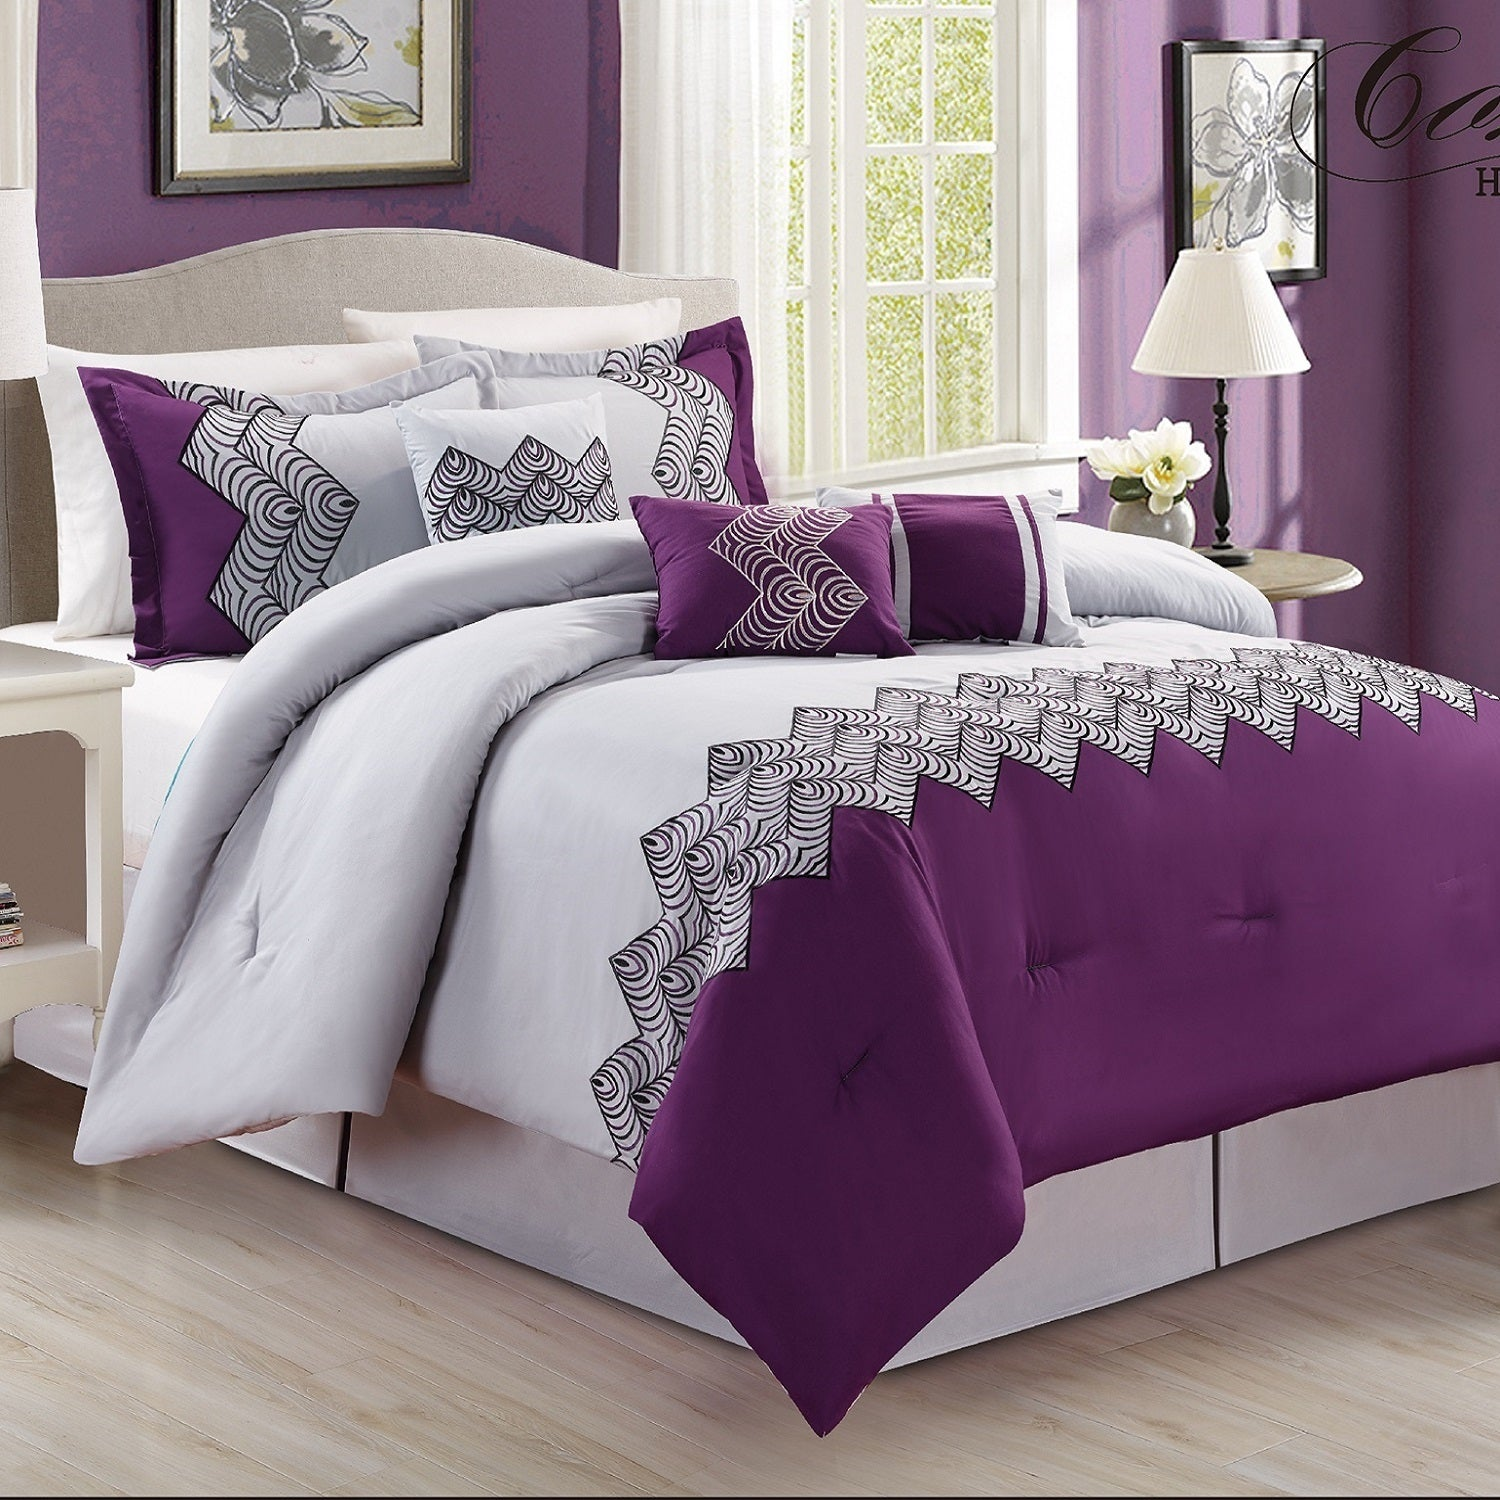 Fashion Street Emparial 7-piece Embroidered Comforter Set...